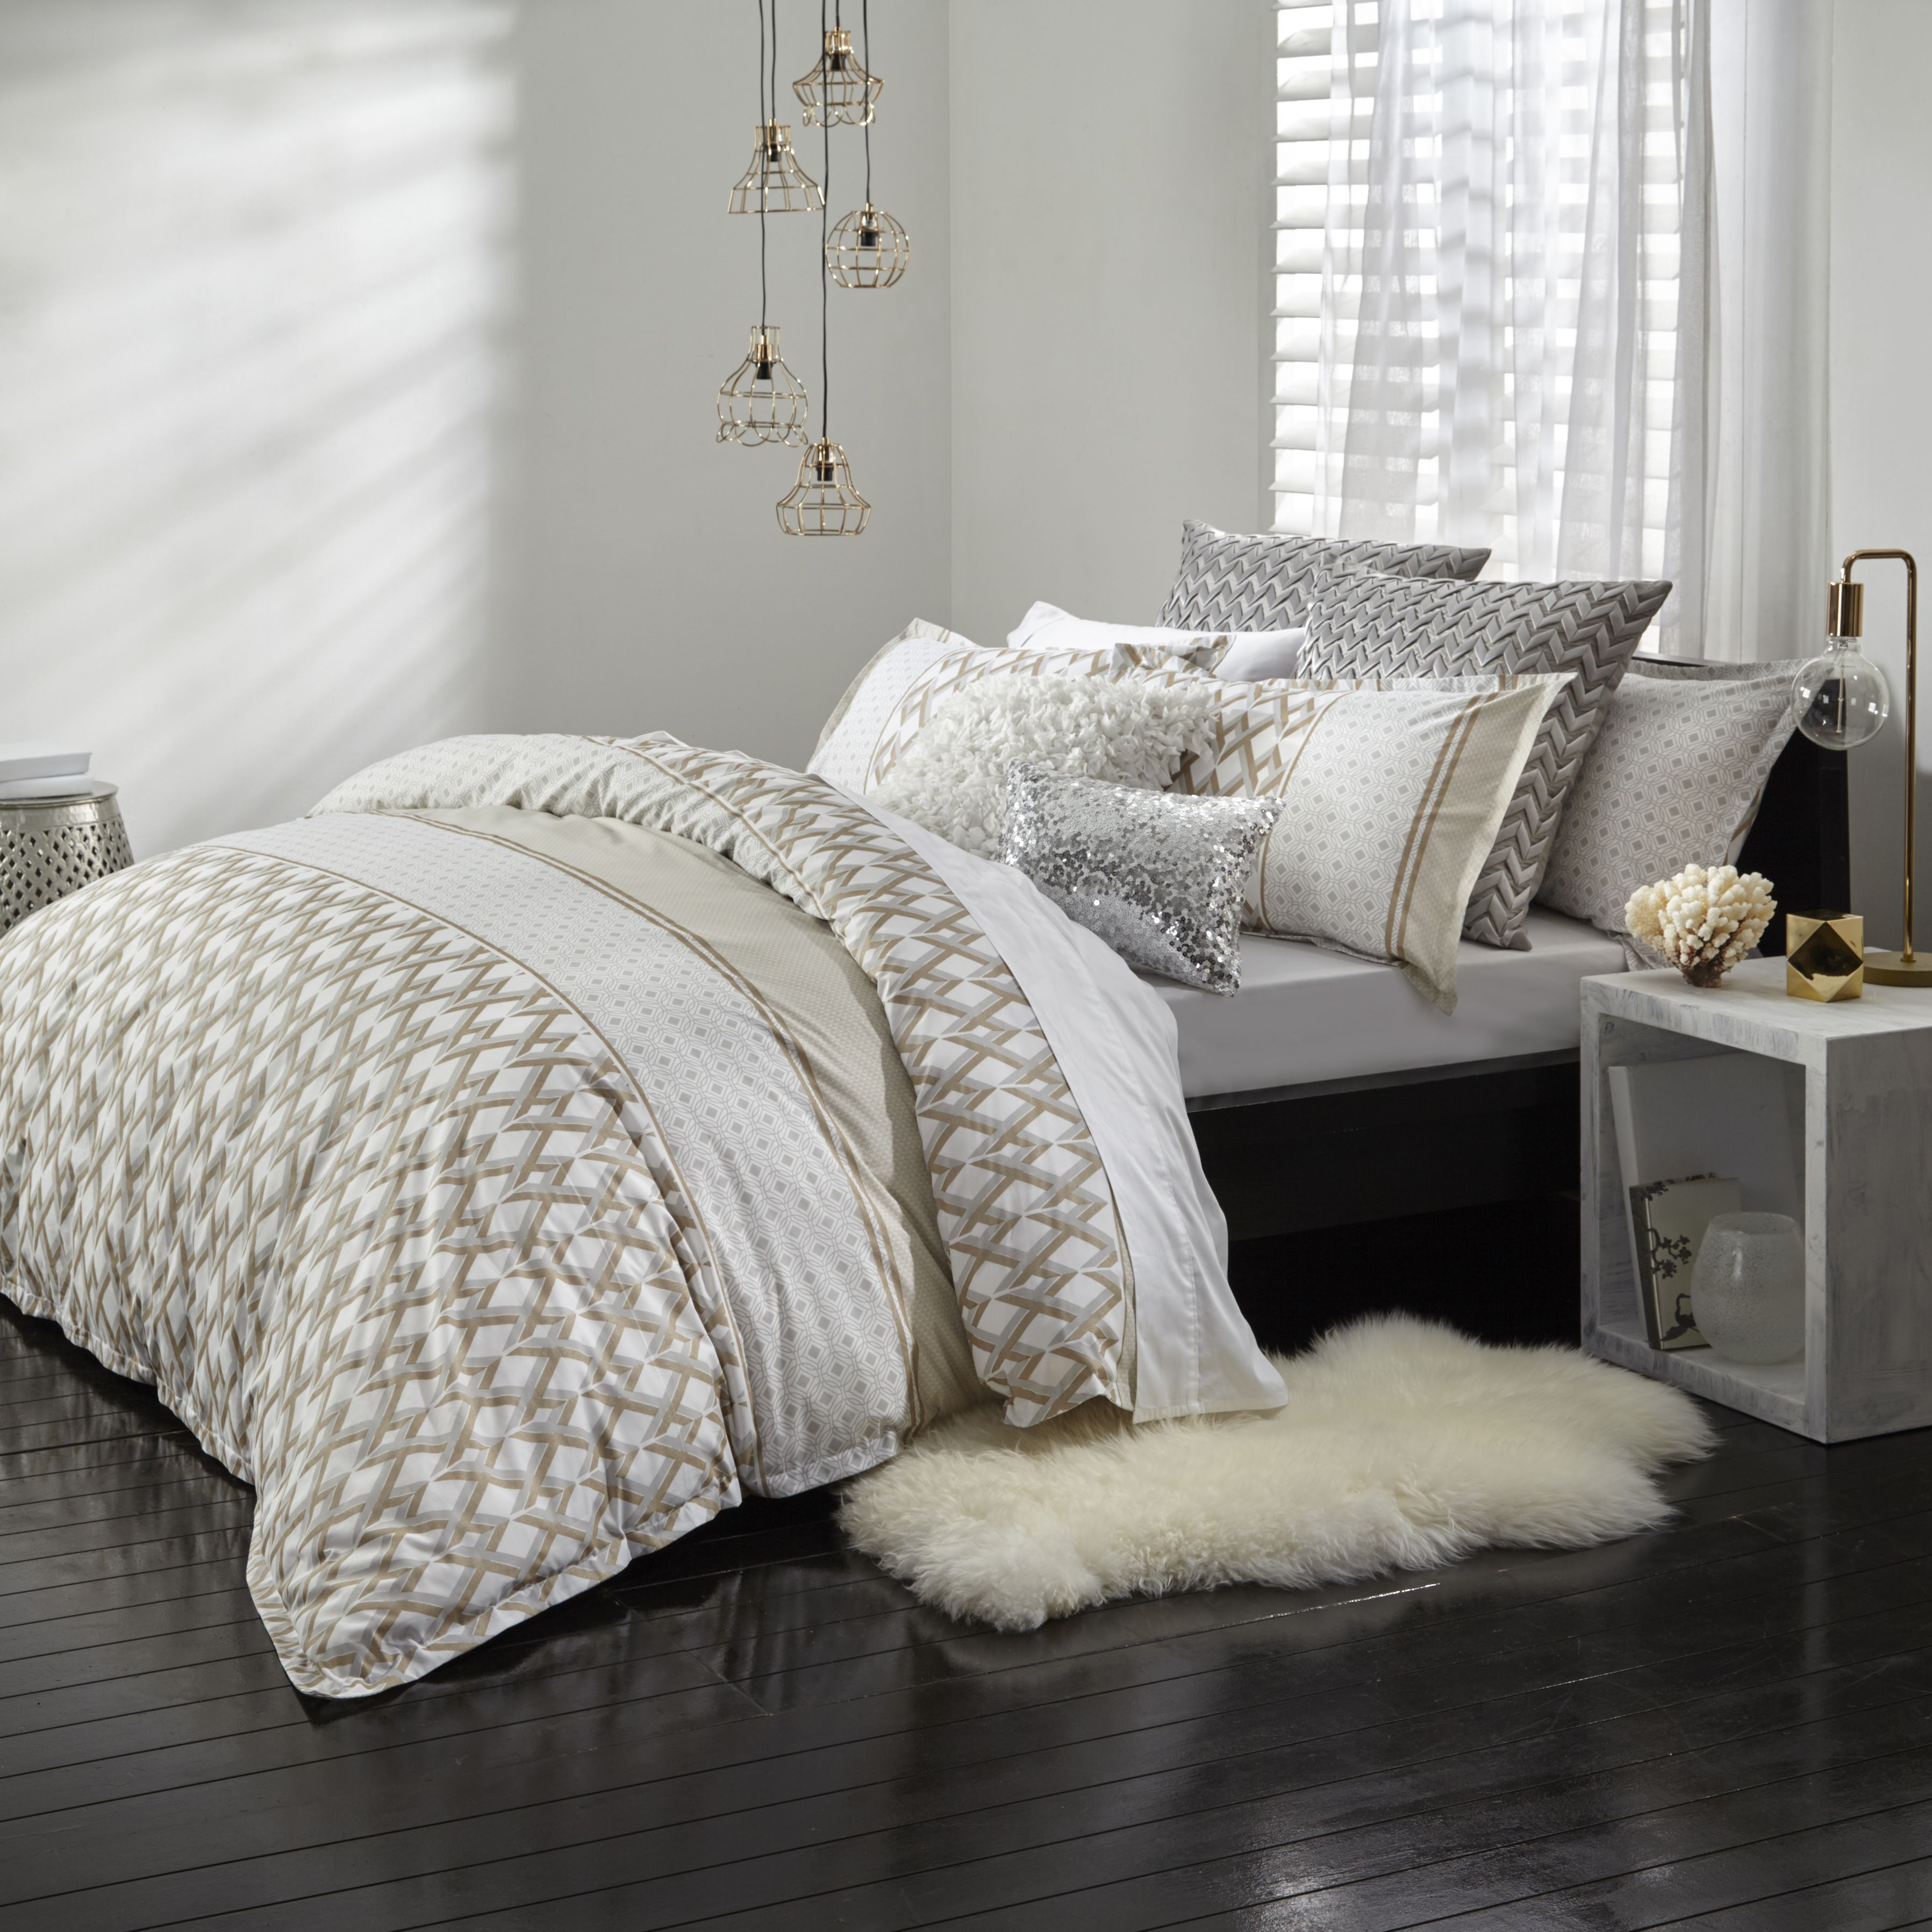 quilt cover estella gold by logan u0026 mason available in single double queen and king double bed sizedouble bedsgold